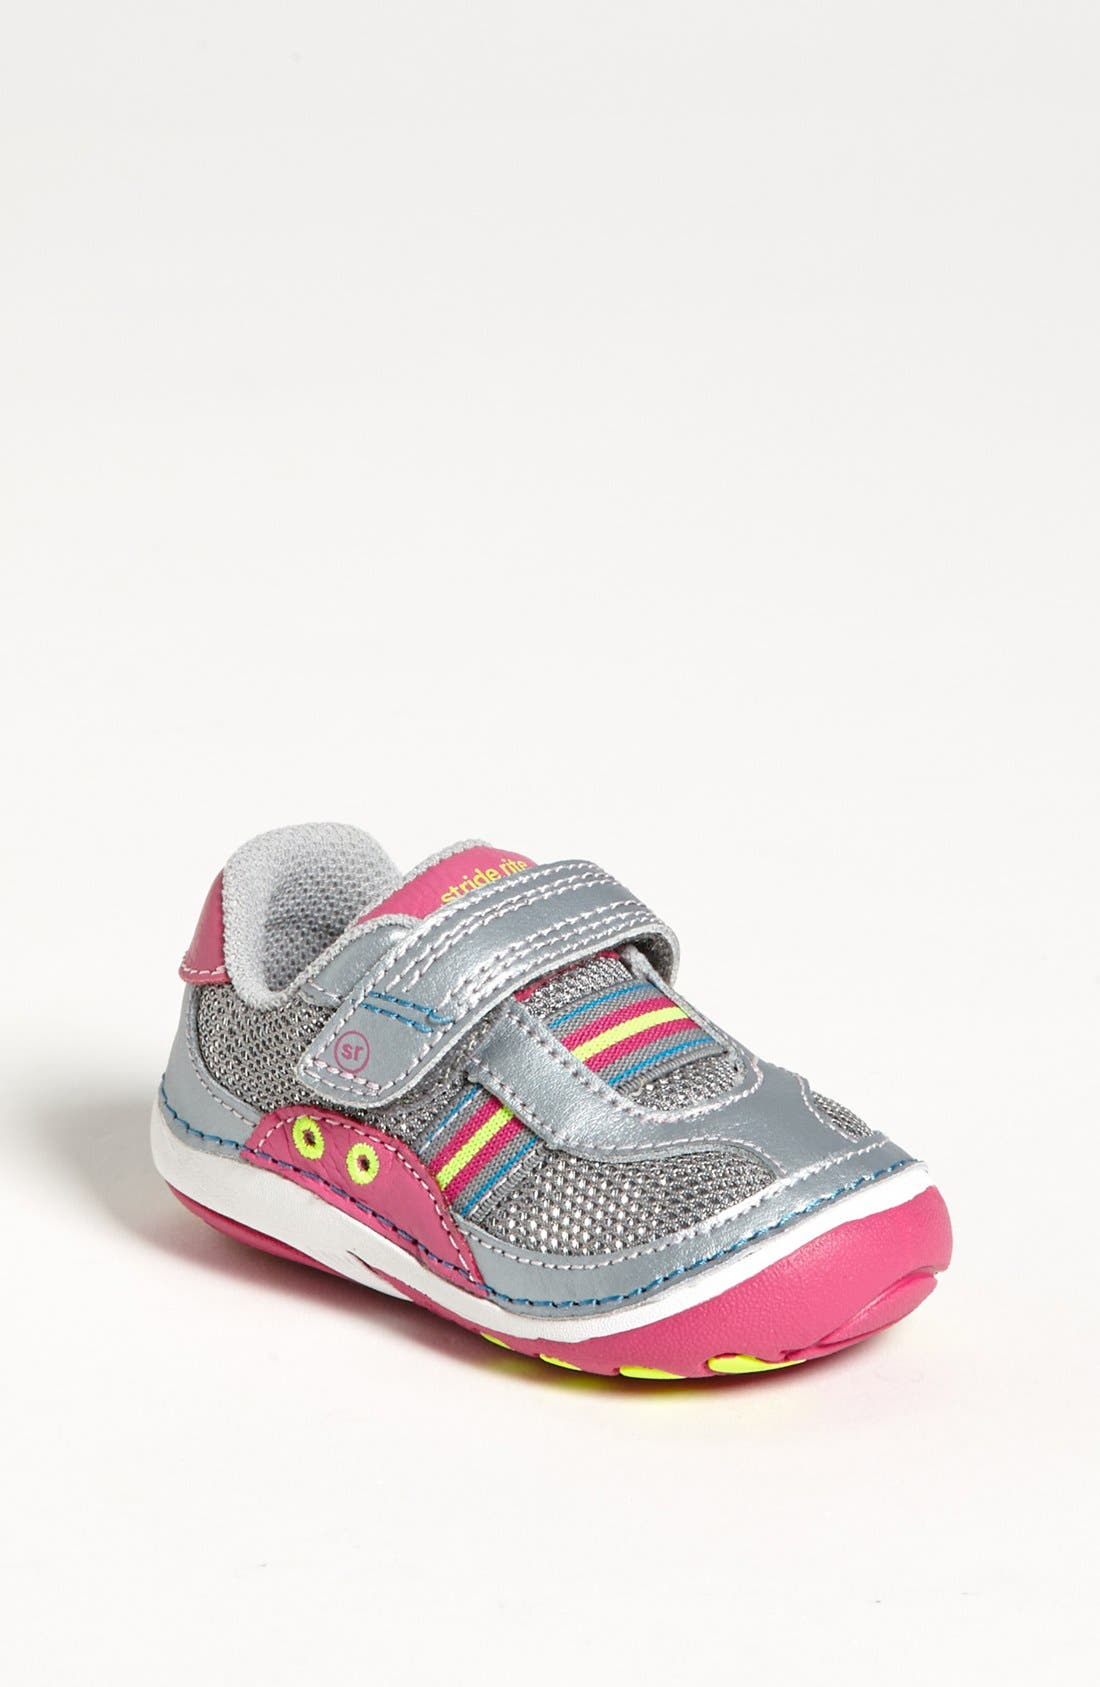 Alternate Image 1 Selected - Stride Rite 'Aldrin' Sneaker (Baby & Walker)